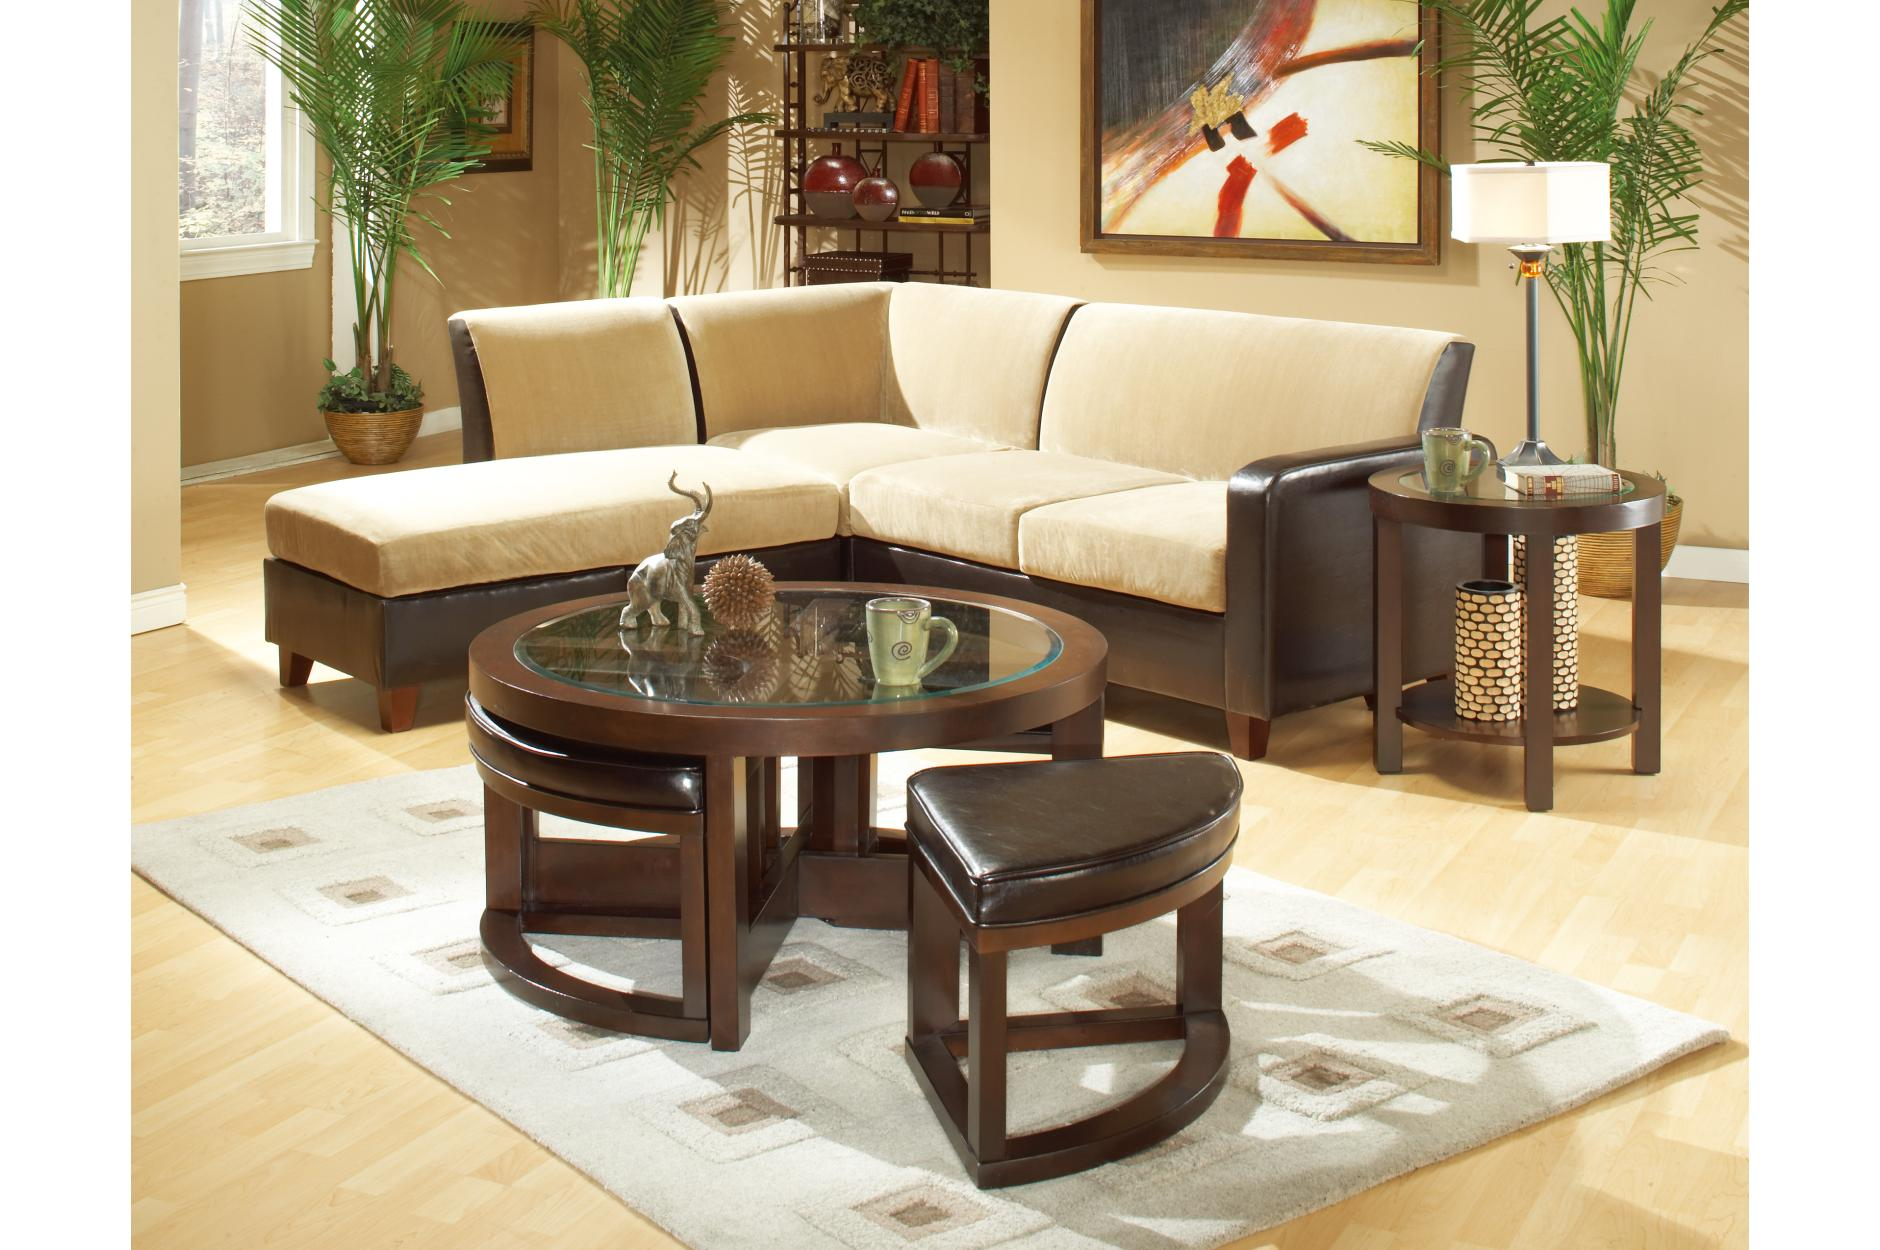 H3 Furniture Inc